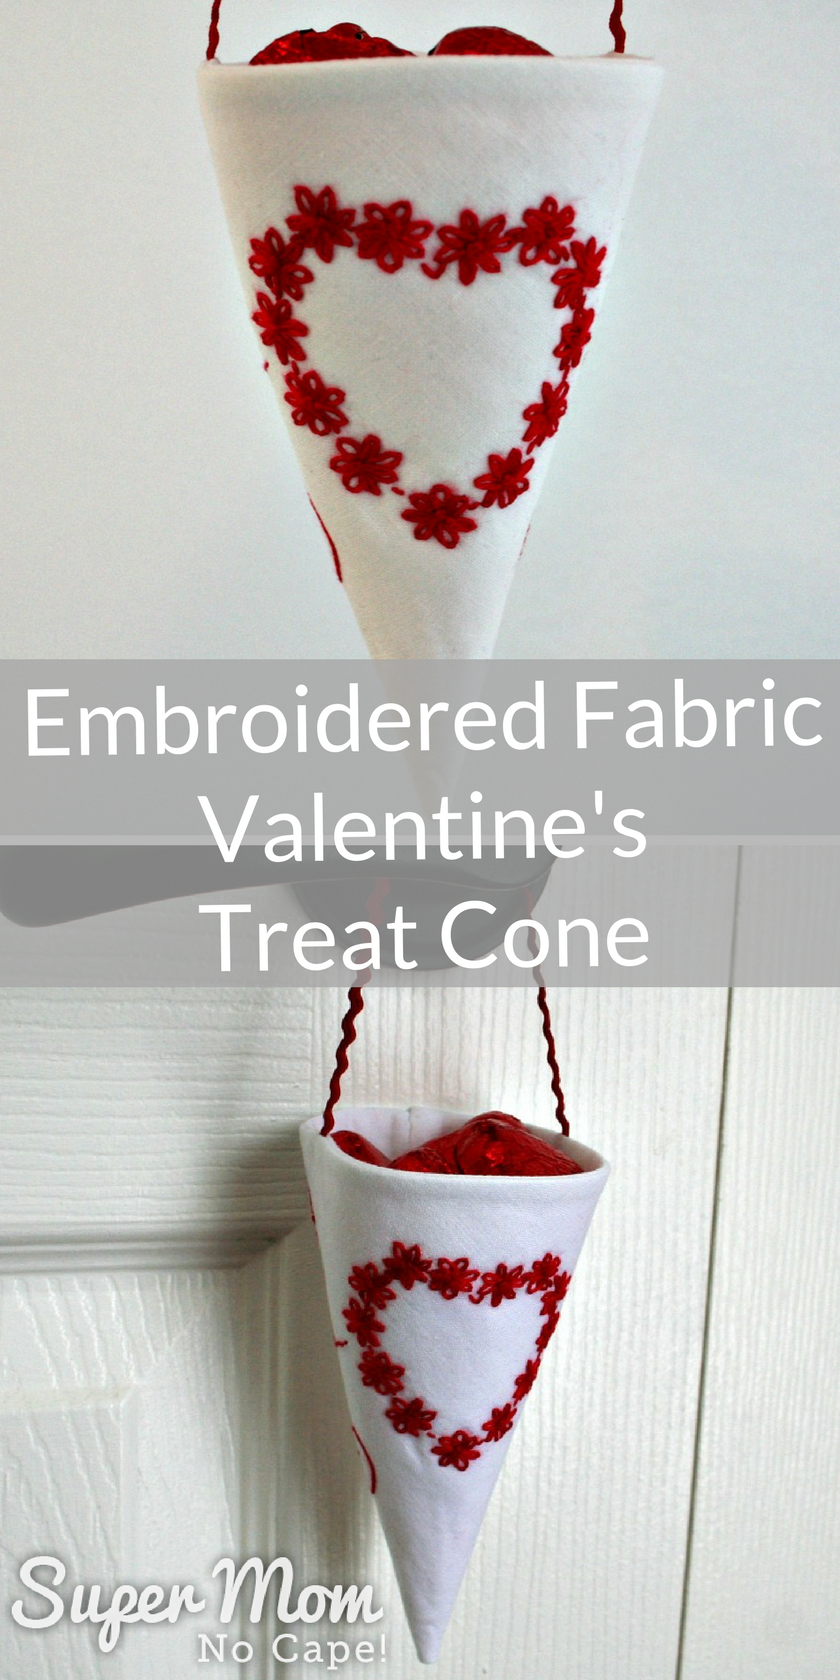 Collage photo of white fabric cone with red embroidered heart